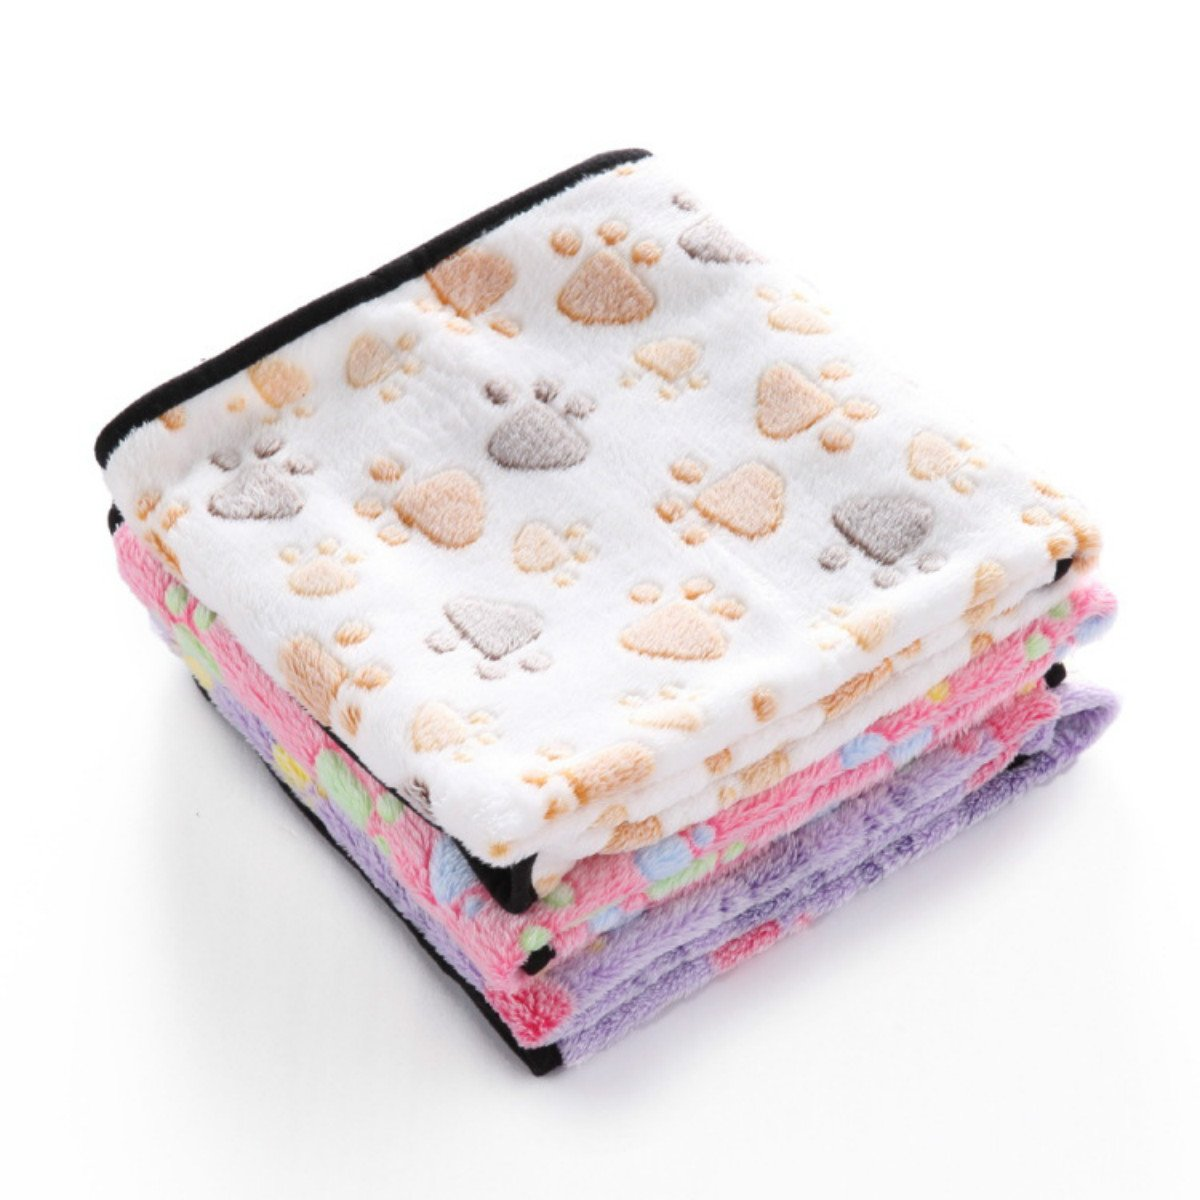 PetBoBo Pet Dog Cat Puppy Blanket Warm Dog Cat Warm Blankets Pet Sleep Mat Pad Bed Cover, Soft Blanket for Pet, Super Soft Micro Plush Pet Blanket Cushion Mat for Animals by PetBoBo (Image #6)